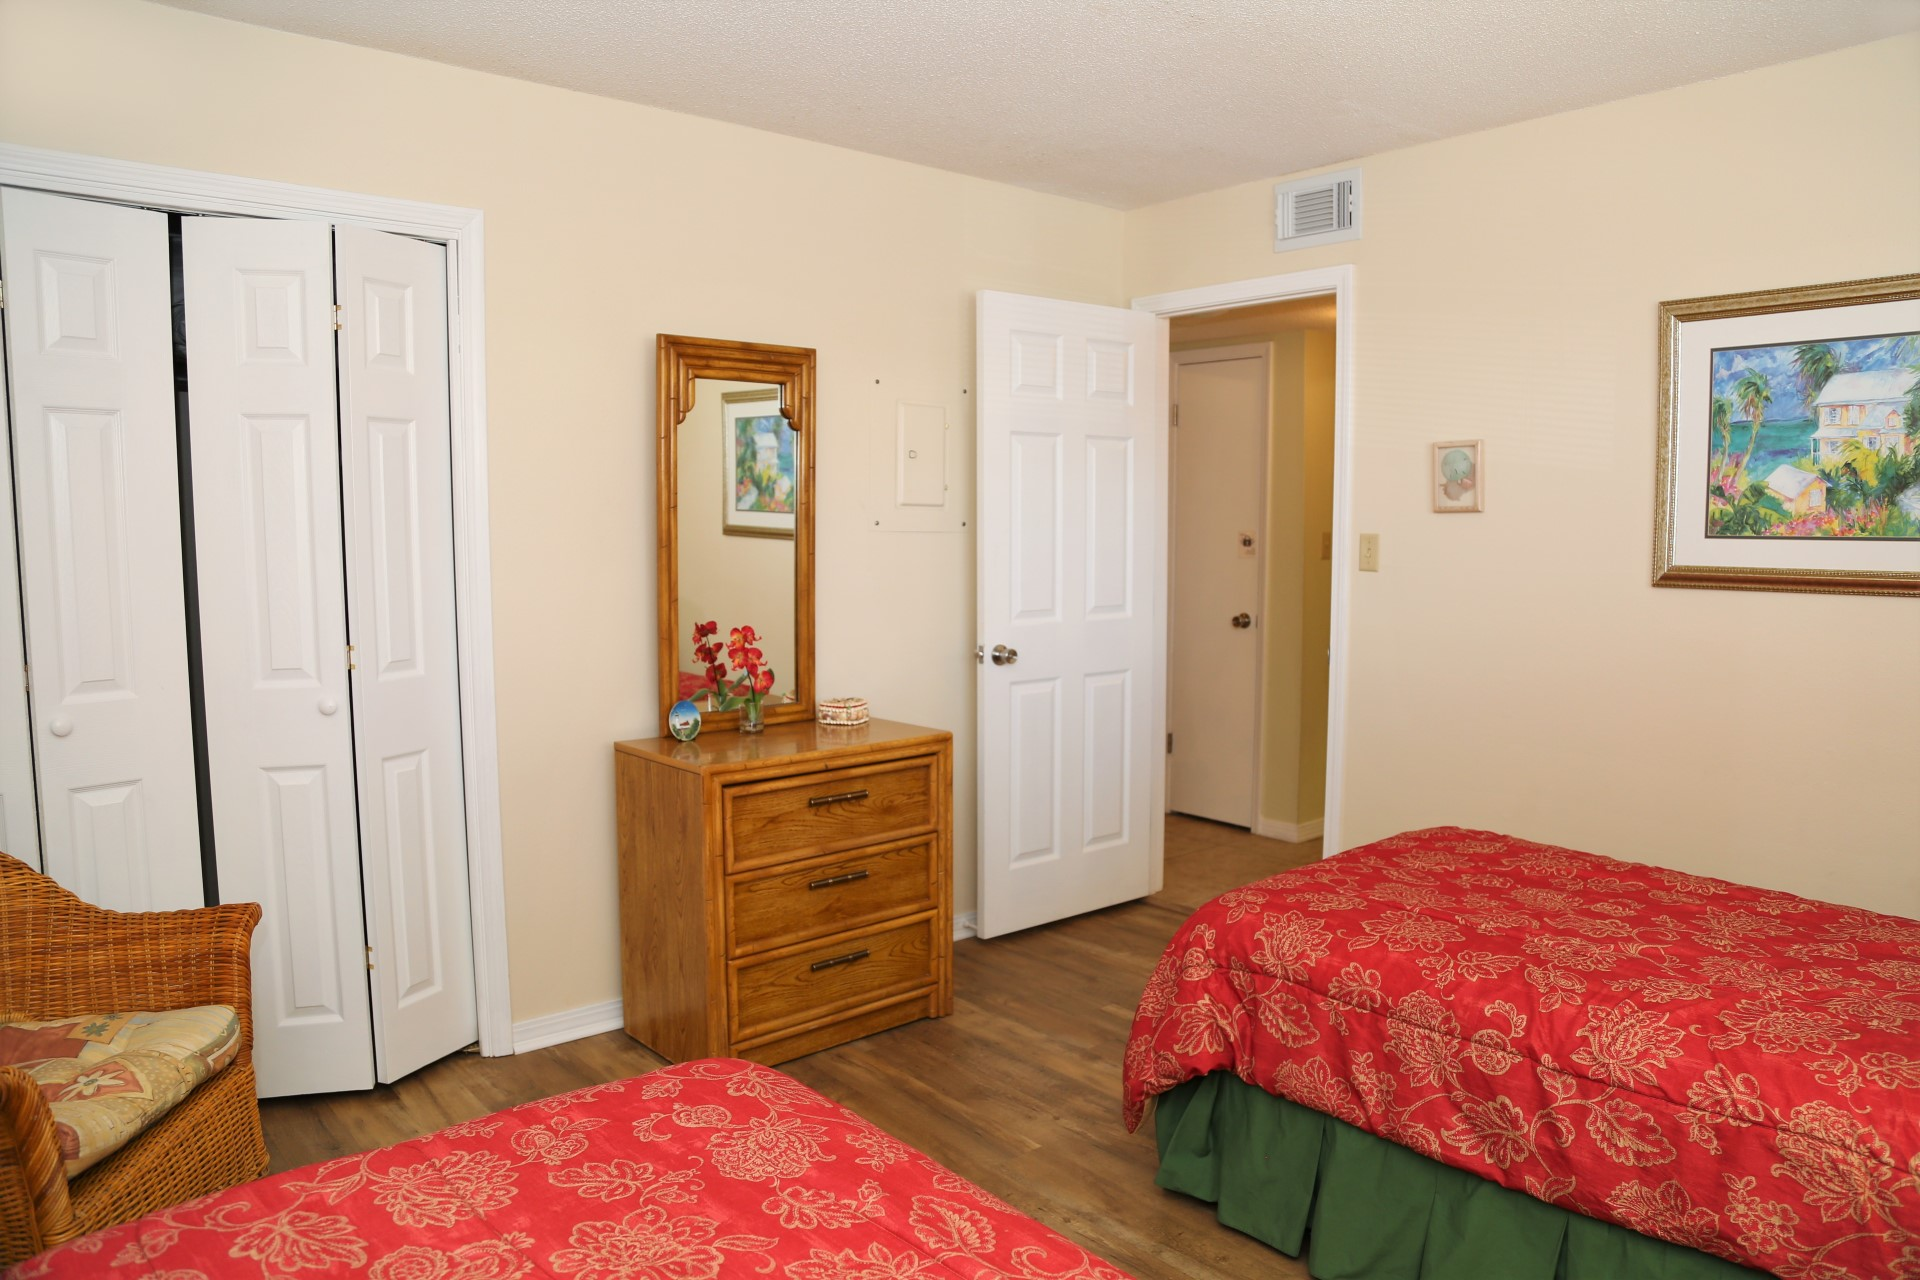 Enjoy new flooring in both bedrooms.